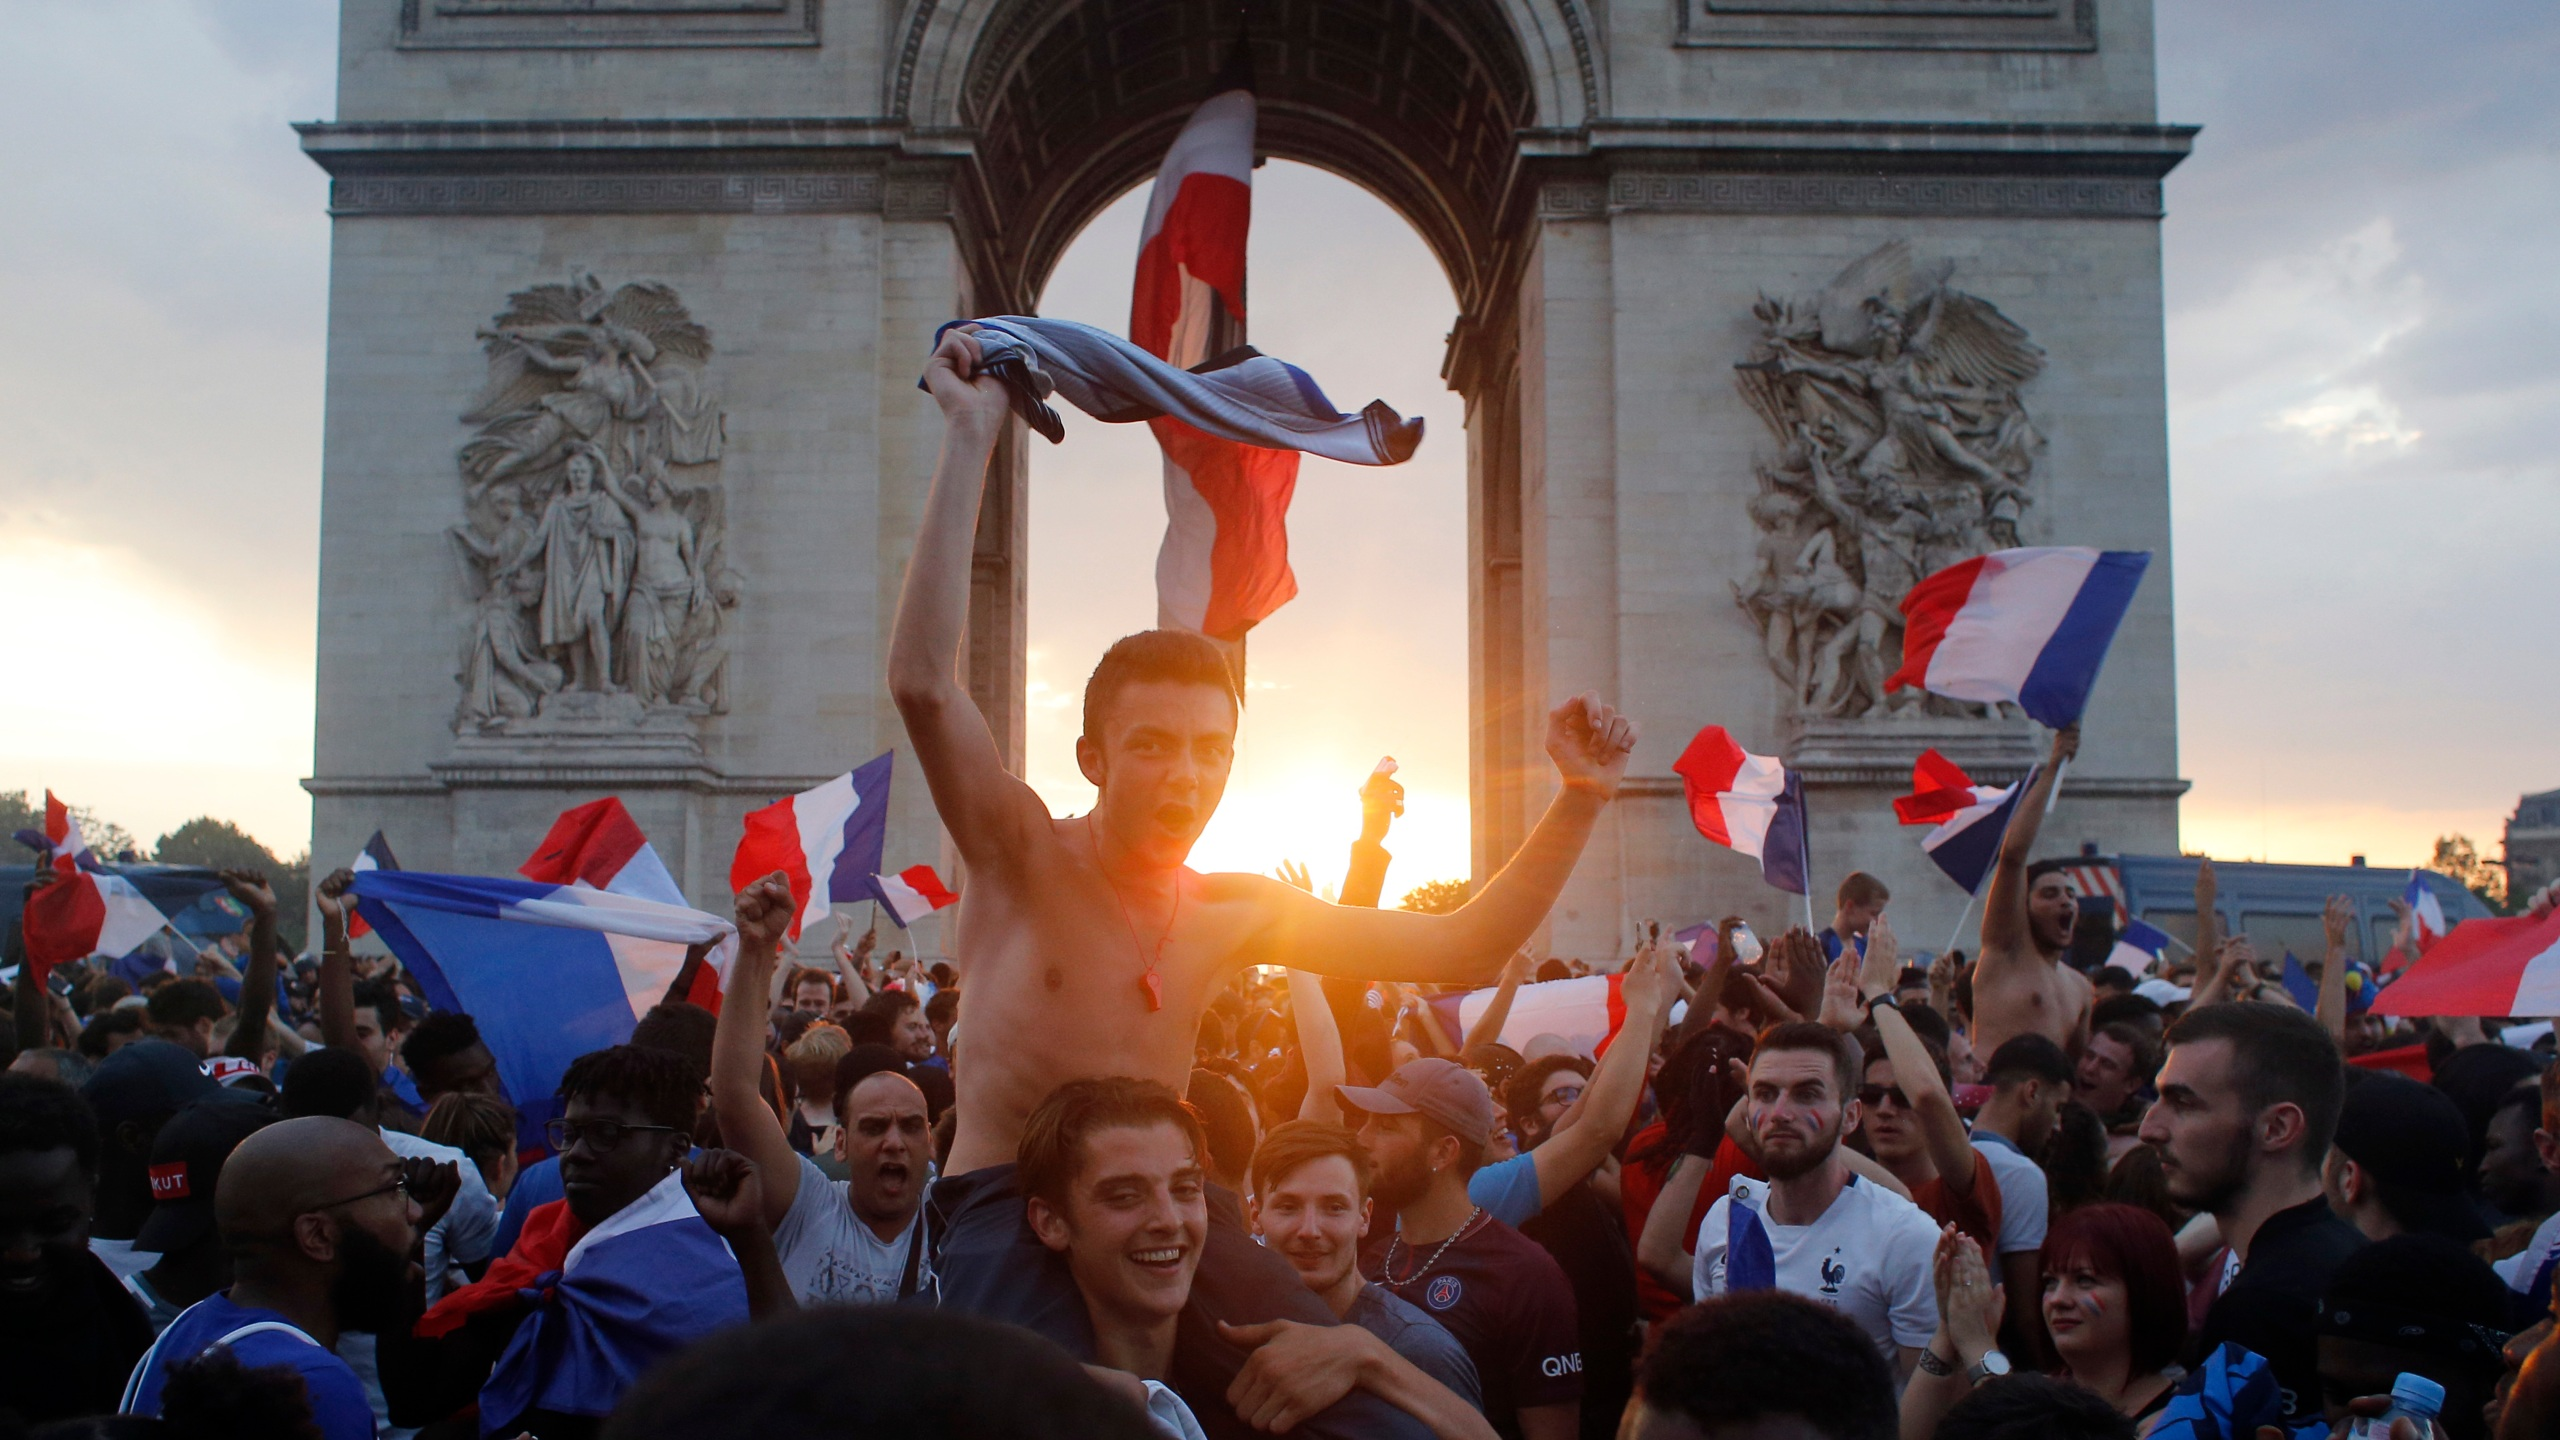 FILE - In this Sunday, July 15, 2018 file photo, people gather around the Arc de Triomphe in Paris, to celebrate France's World Cup victory over Croatia. On Friday, July 23, 2021, The Associated Press reported on a photo of a blond woman with a flag atop the Arc de Triomphe circulating online, incorrectly asserting it shows recent protests in Paris over the government's latest coronavirus measures. But the photo shows celebrations in Paris in July 2018 after France won the World Cup, not a recent protest. (AP Photo/Thibault Camus, File)